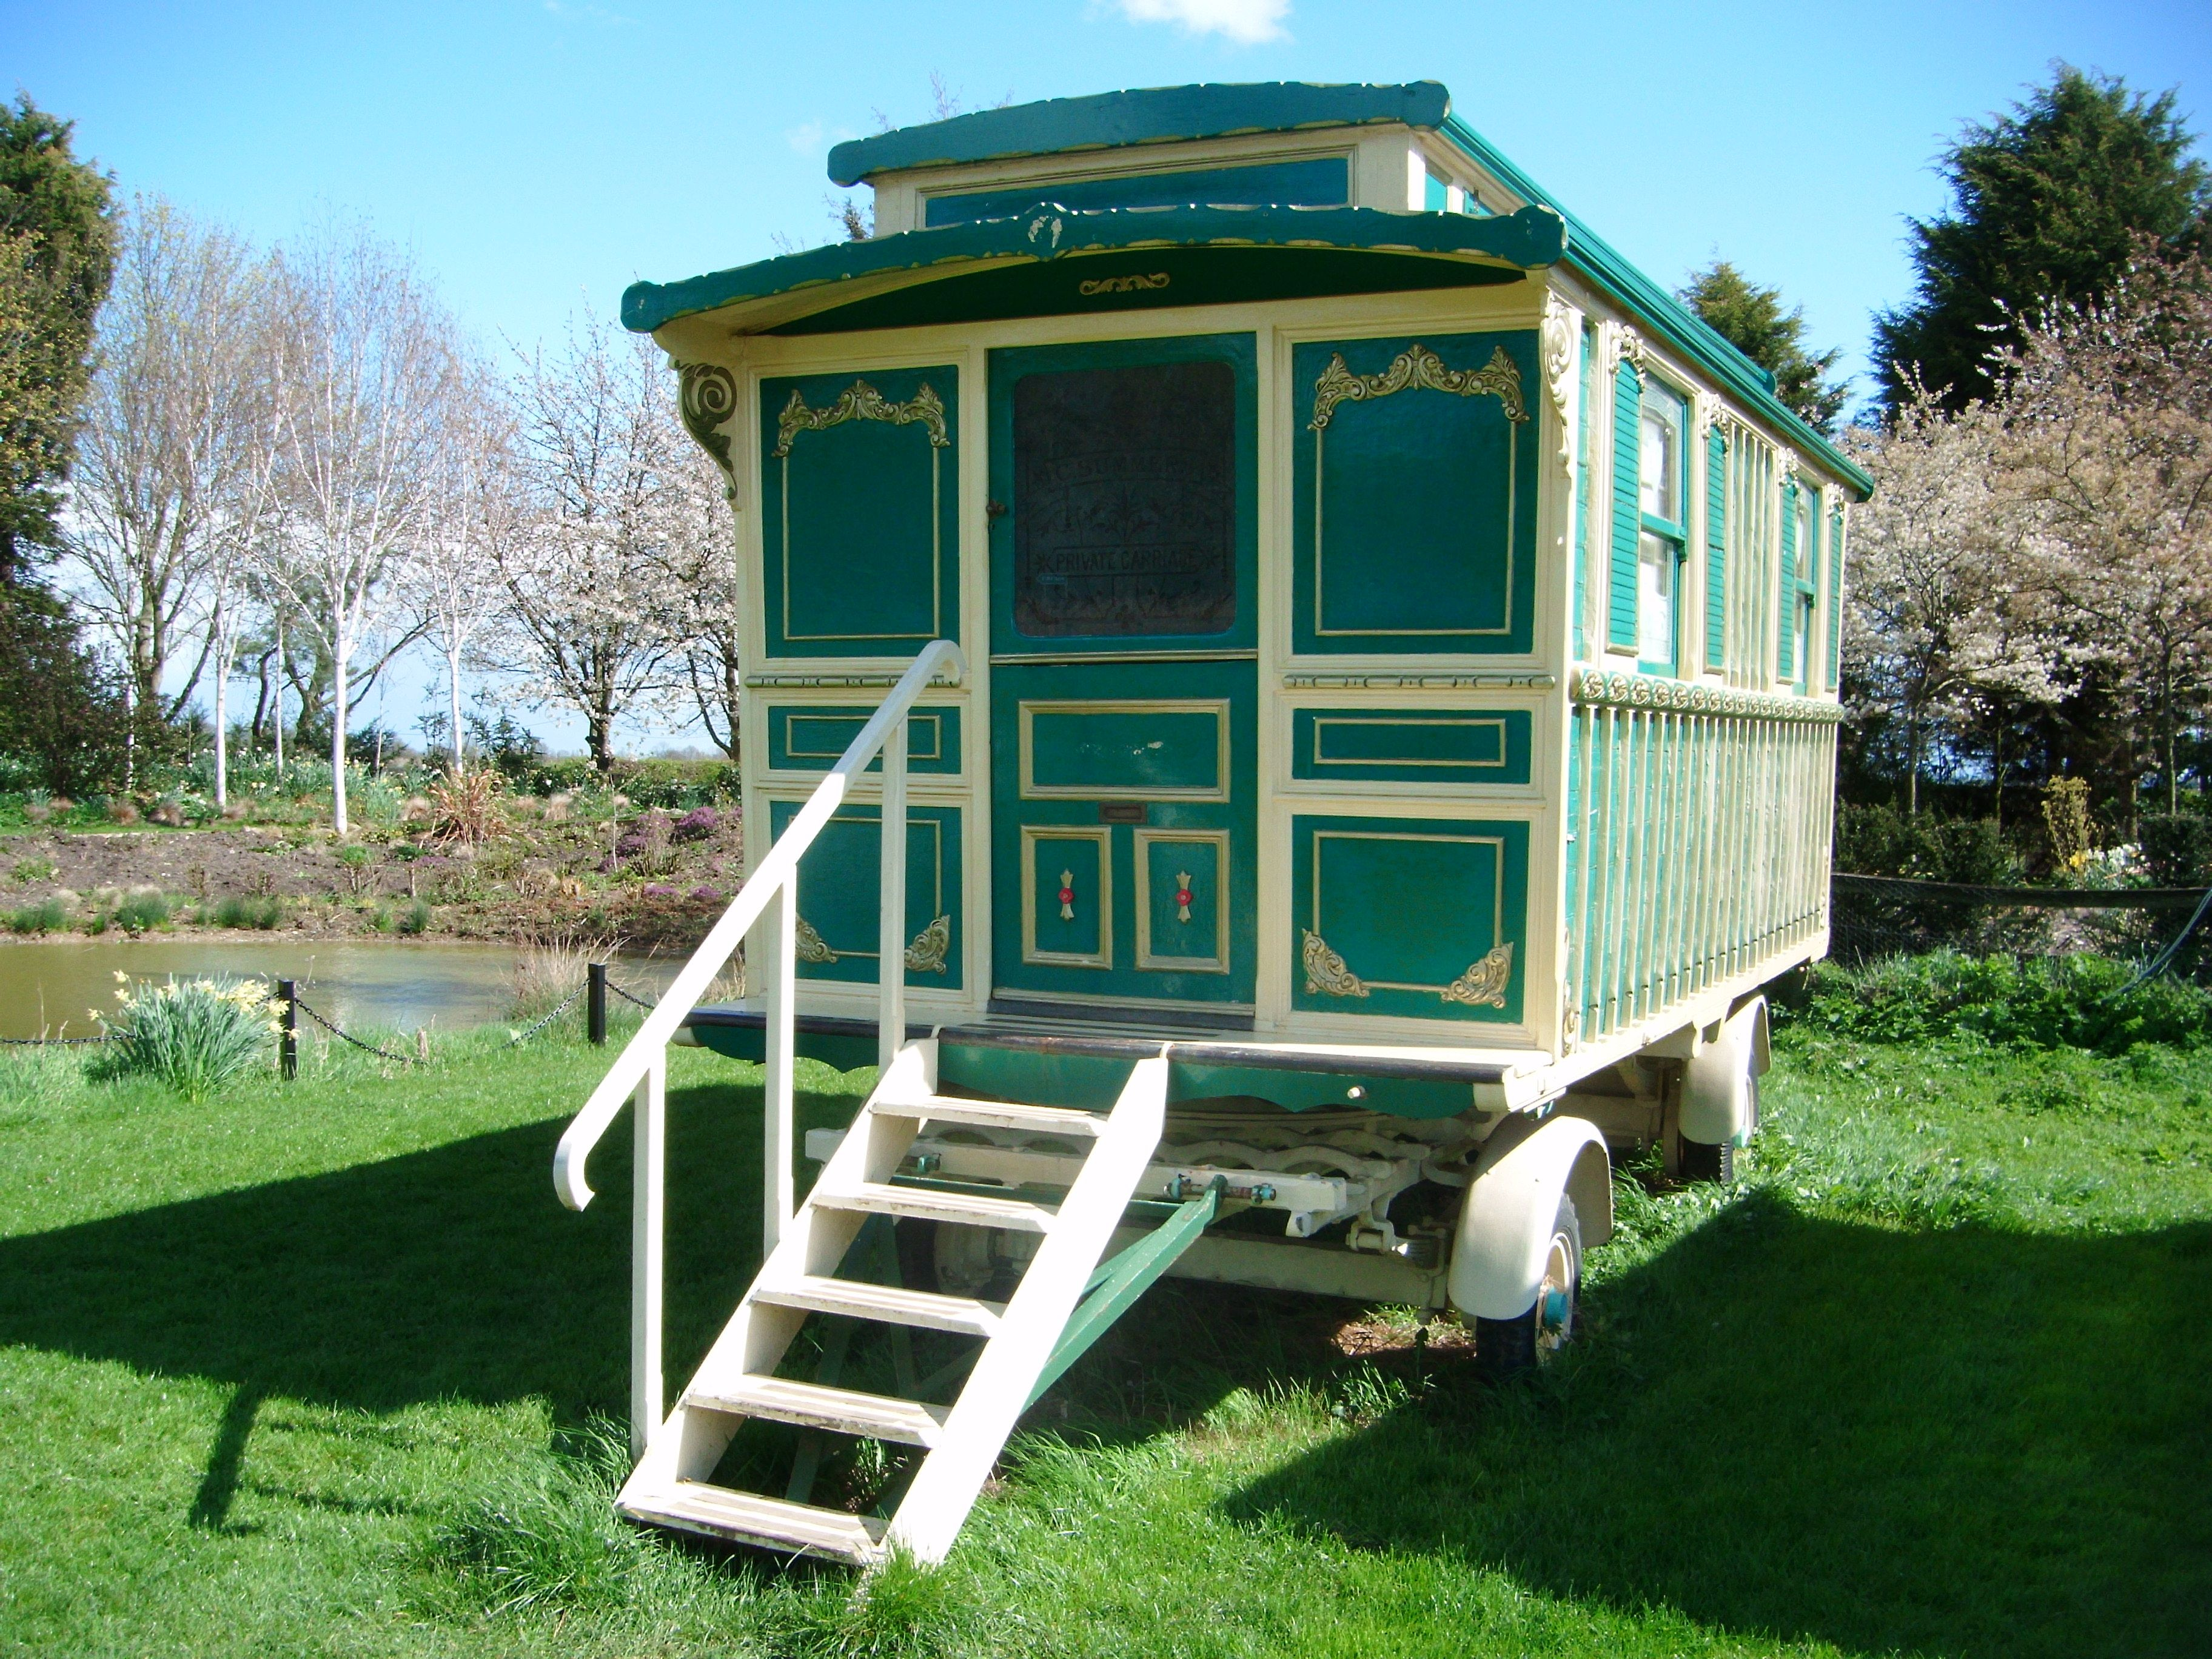 The showman s romany caravan at south farm cambridgeshire it s very cosy and extremely ornate